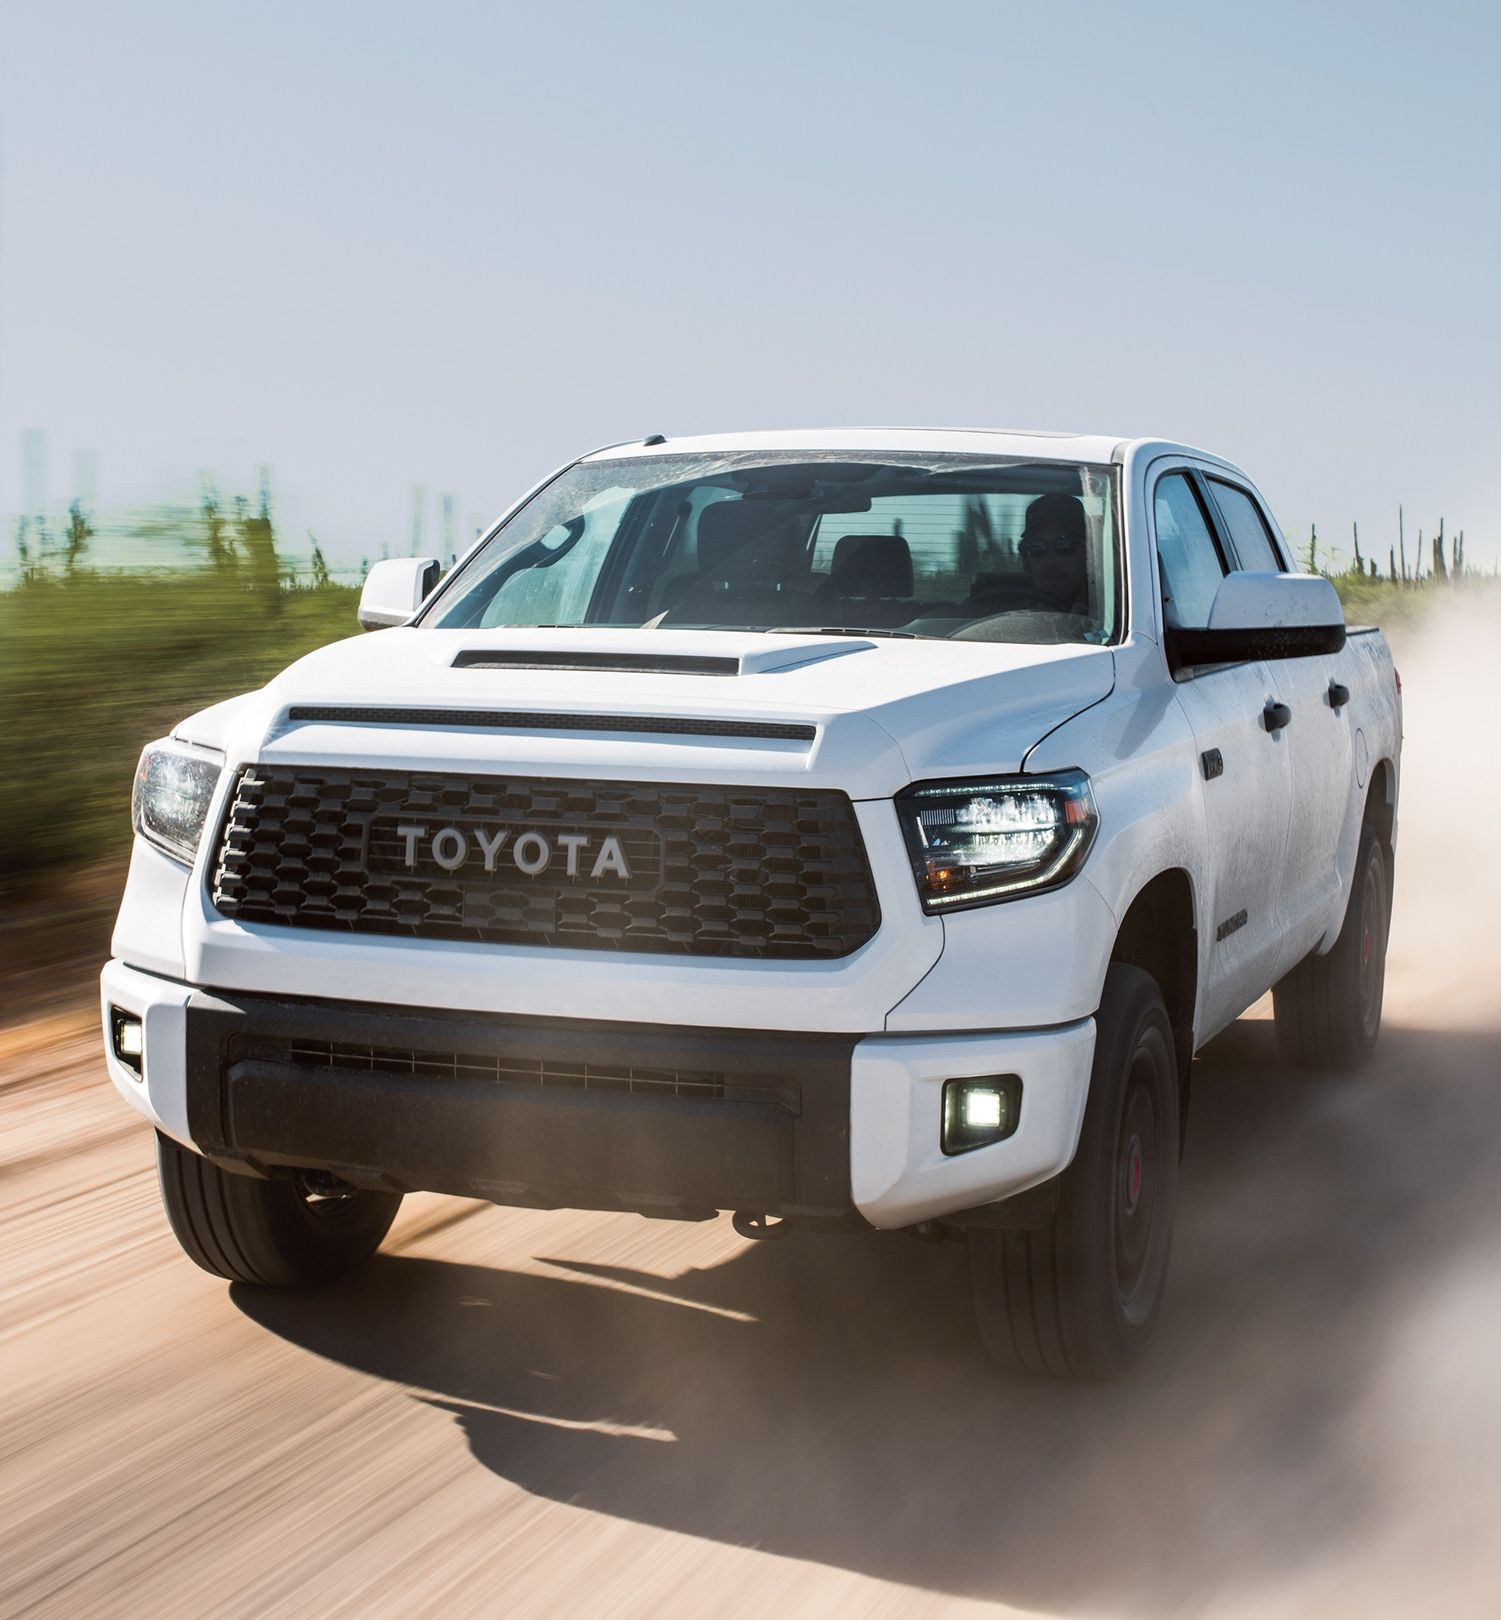 2019 Toyota Tundra For Sale Near Stamford, CT